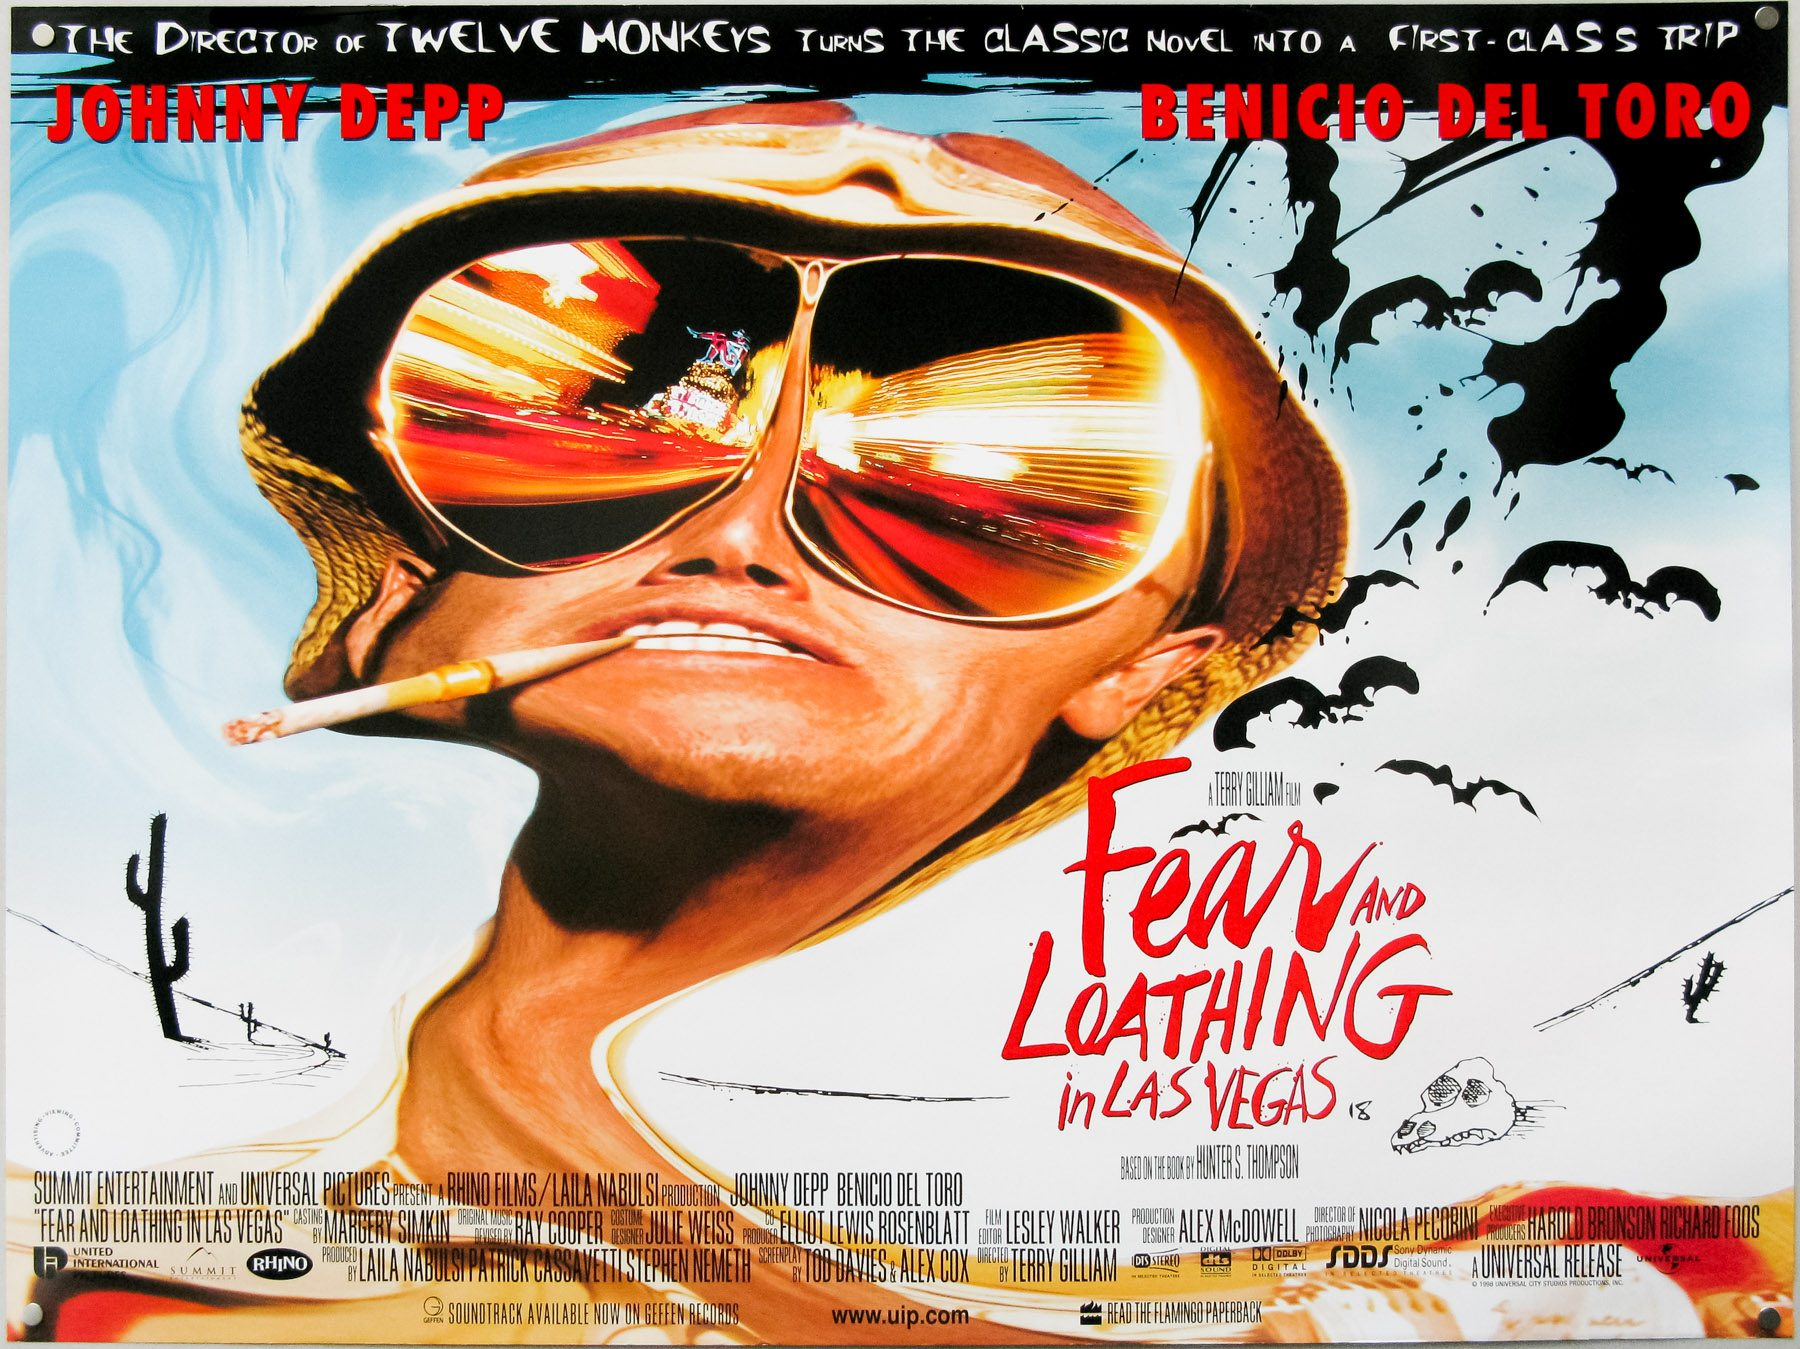 In Praise of Fear and Loathing in Las Vegas